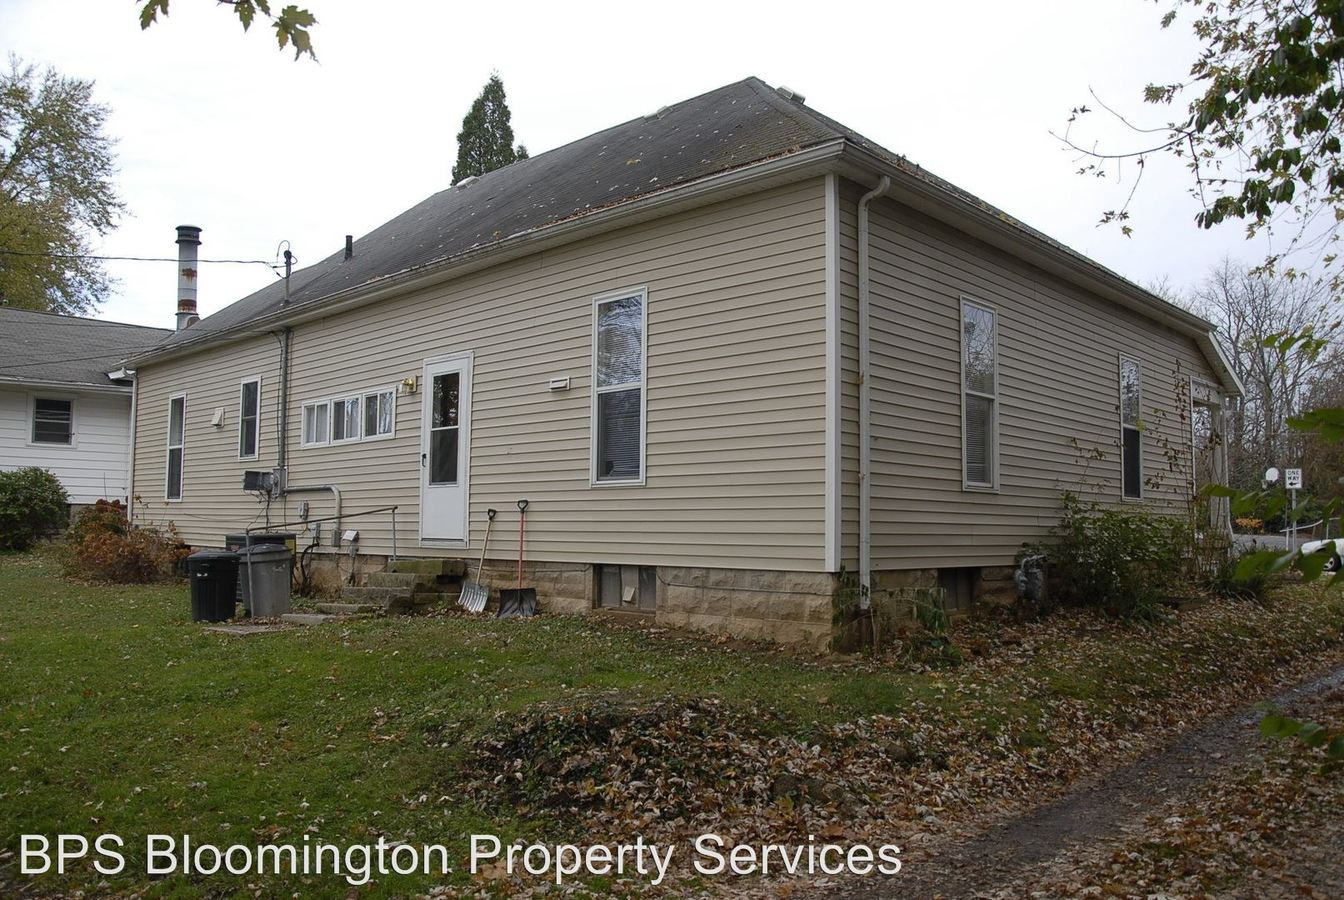 4 Bedrooms 1 Bathroom Apartment for rent at 614 S Lincoln St in Bloomington, IN